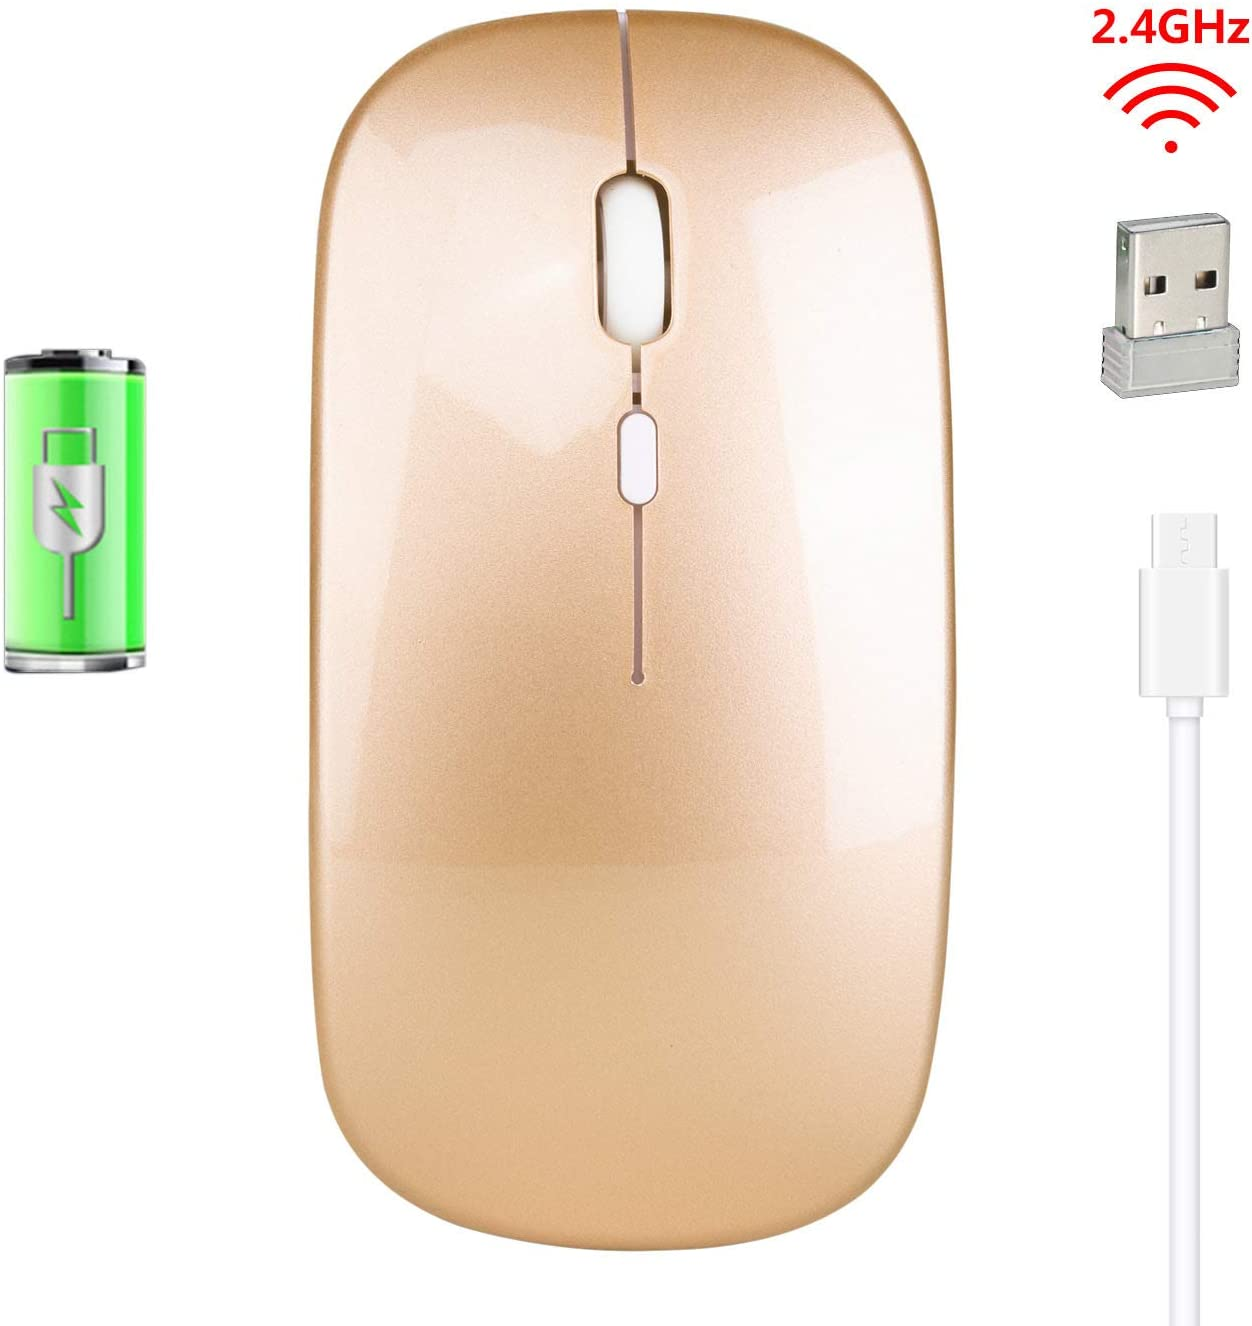 RUIMING Quiet Wireless Mouse Rechargeable Charging USB Wireless Mice PC Laptop Computer Silent Mute Office Notebook Mice for Home Office